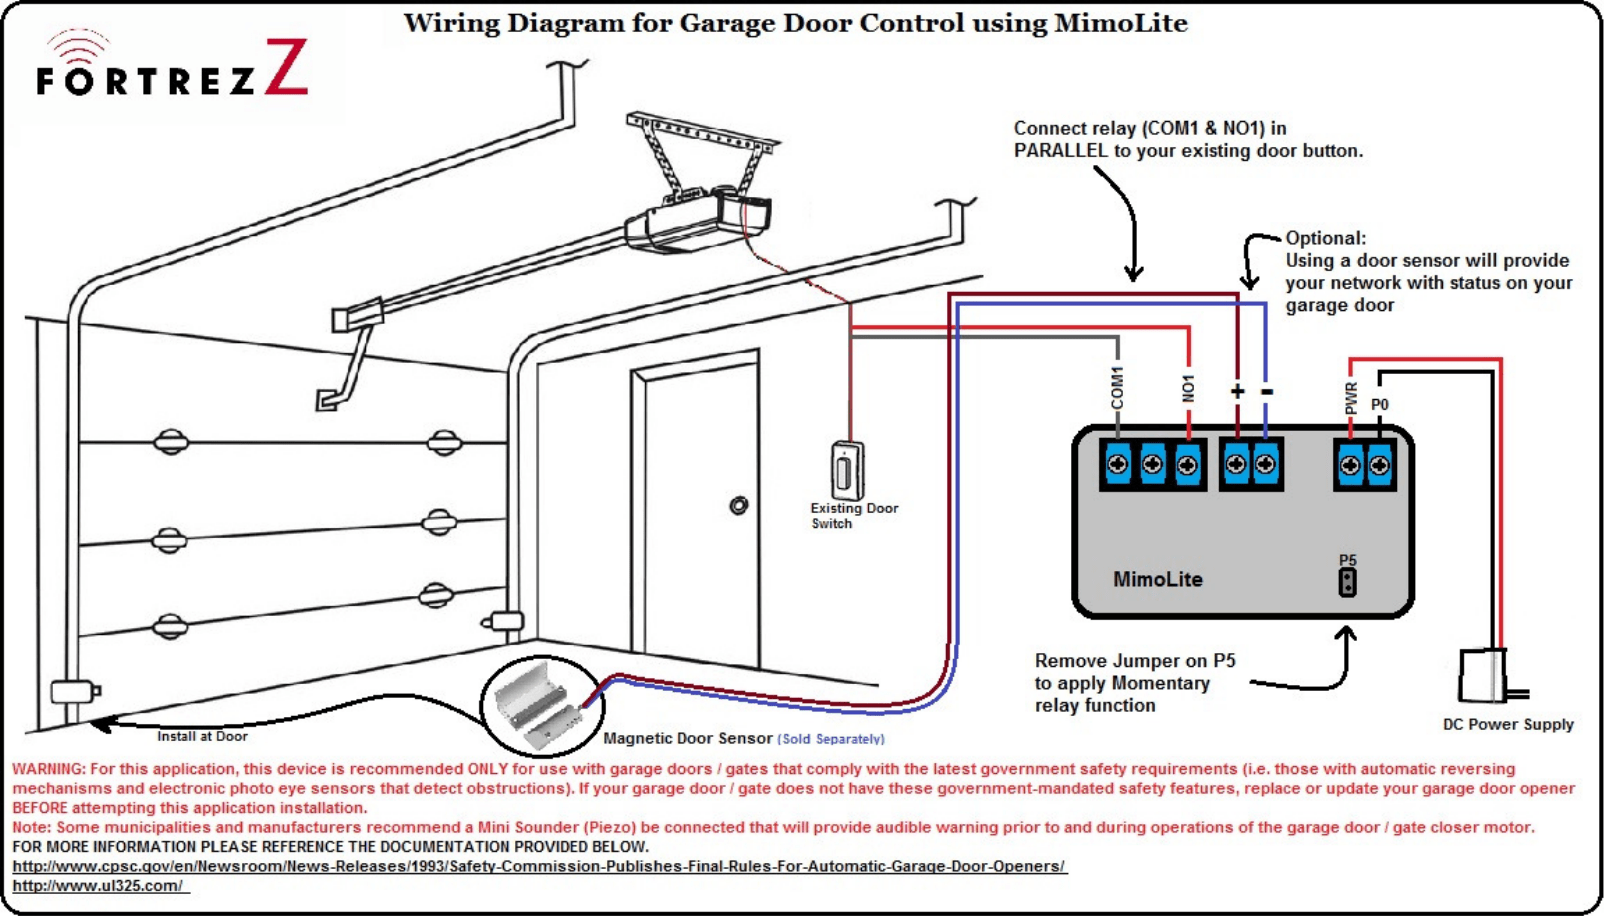 hight resolution of mimo wiring diagram wiring diagram blog mimo wiring diagram